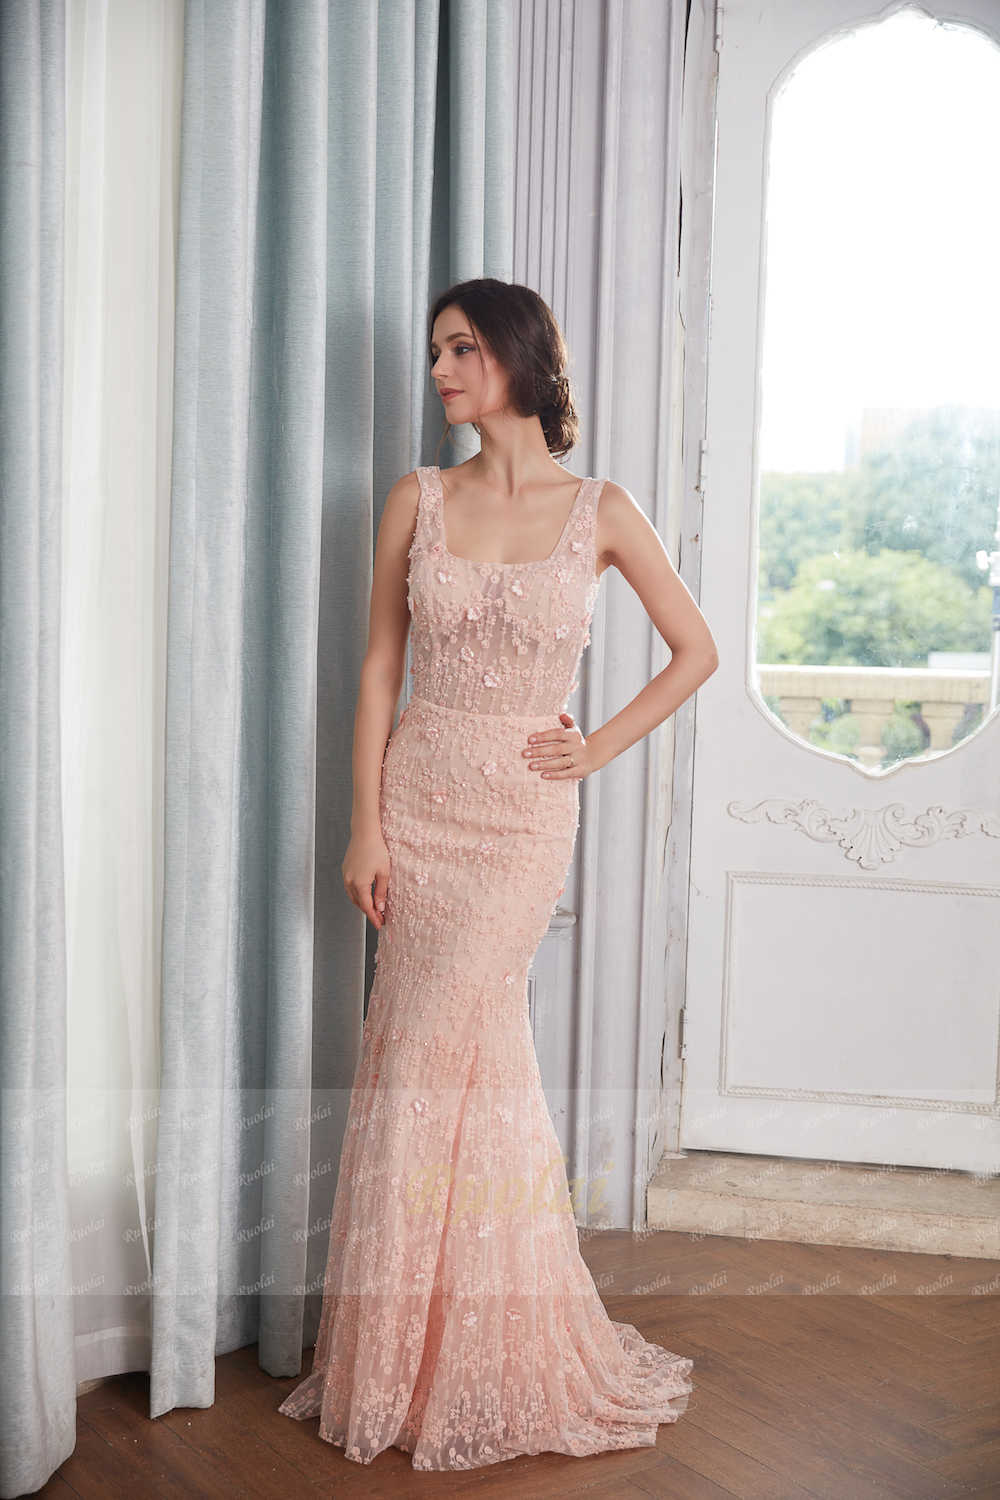 26183c74b ... Sexy Mermaid Evening Dresses 2019 Square Neck Flower Beaded Lace Prom  Dress 2019 Long Evening Gown ...